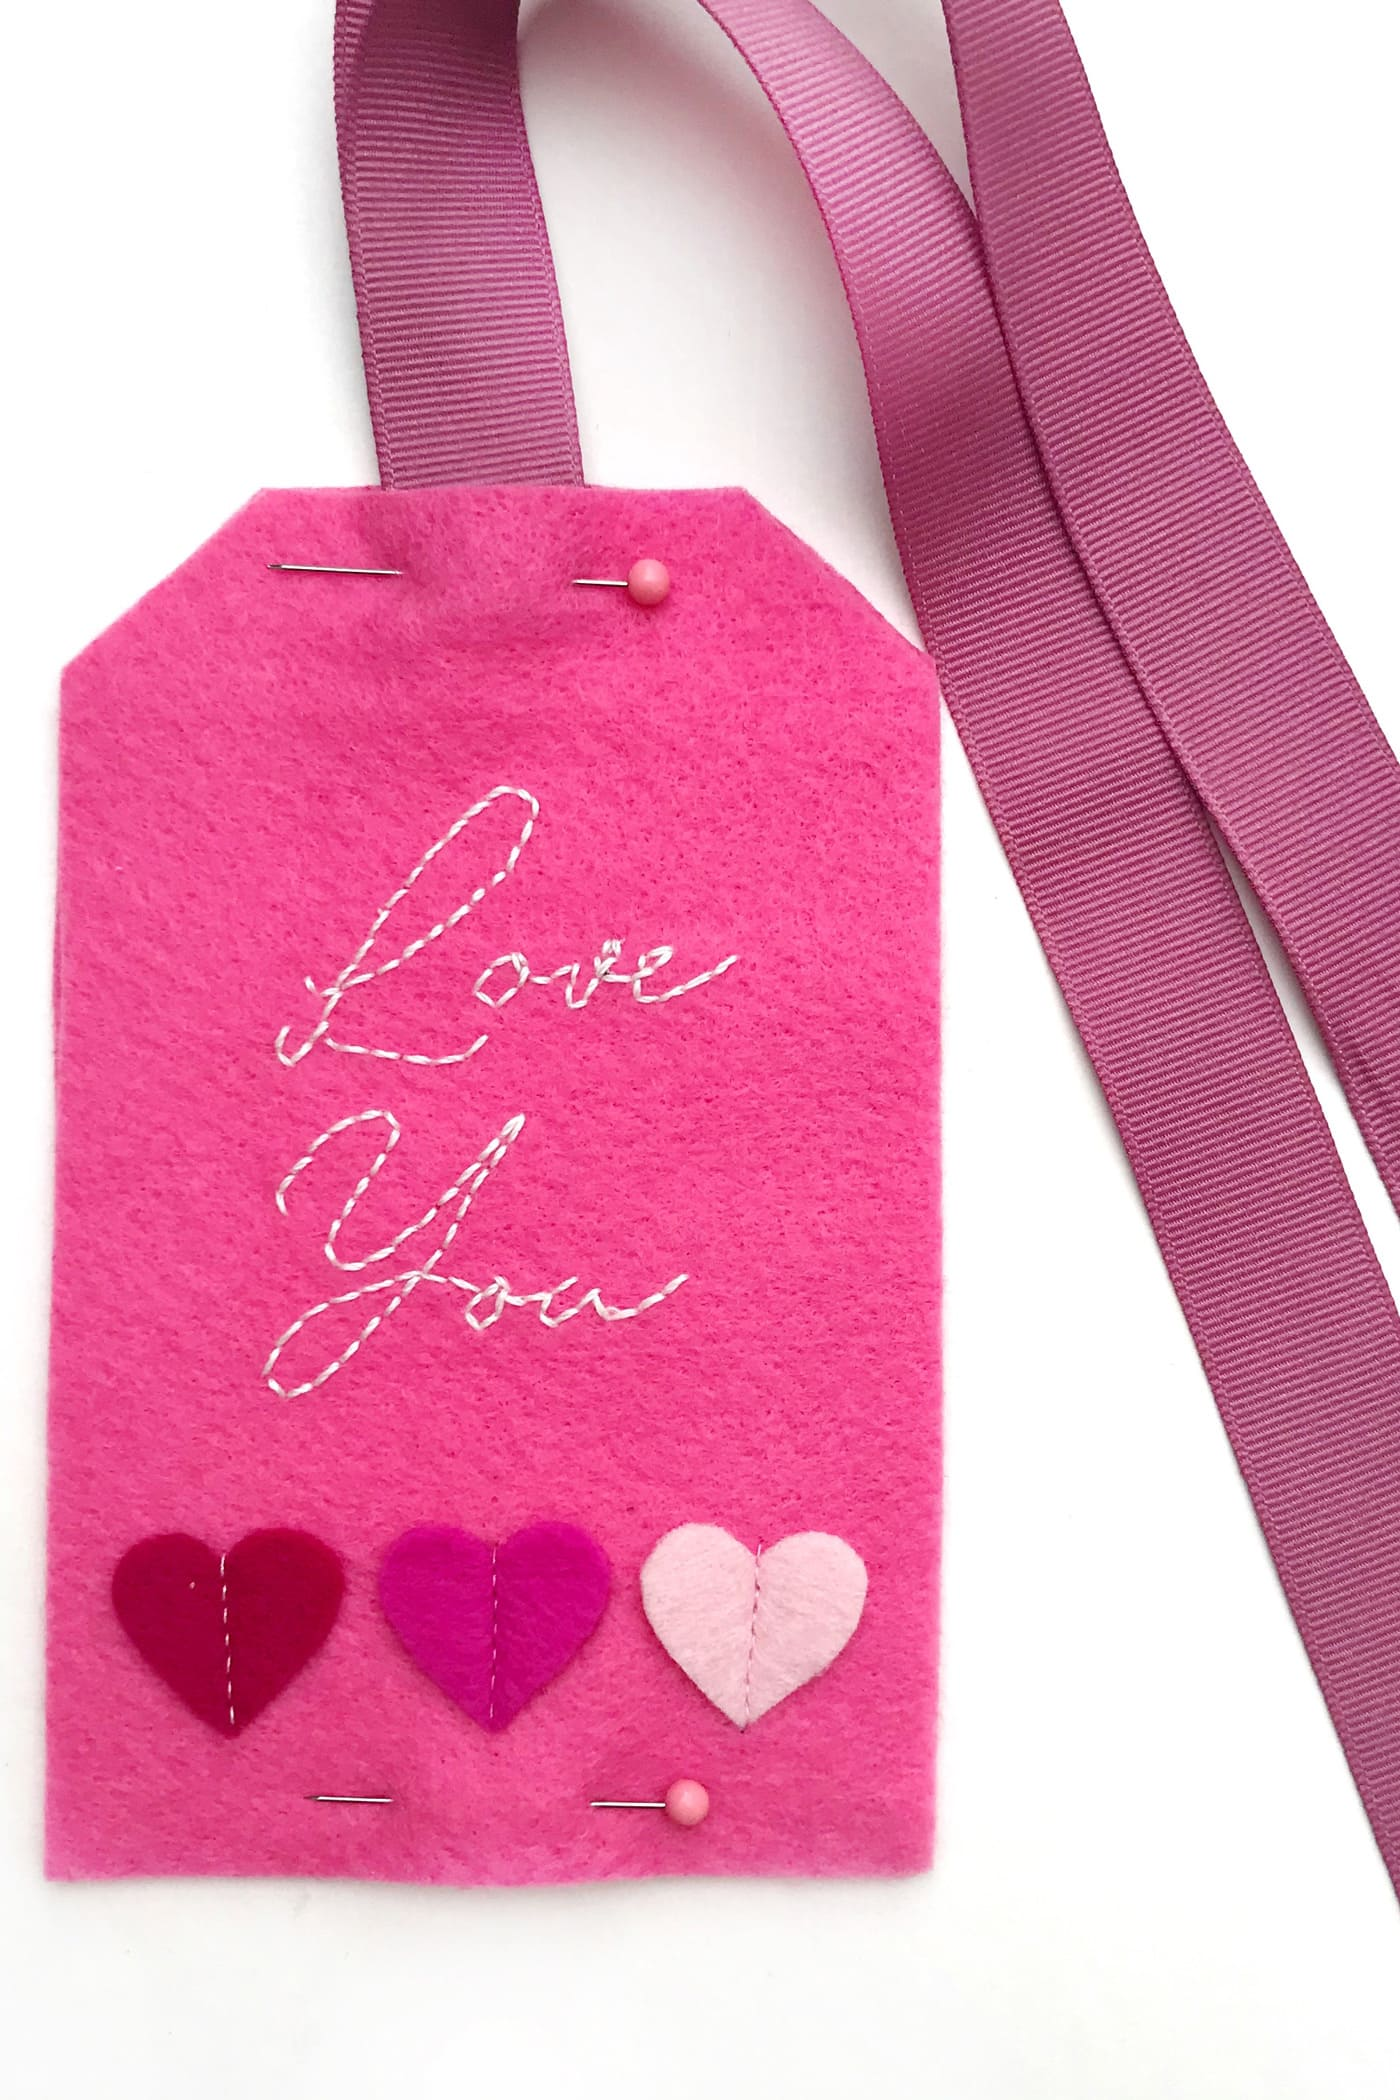 hand embroidered felt gift tags on white table showing ribbon attachment process